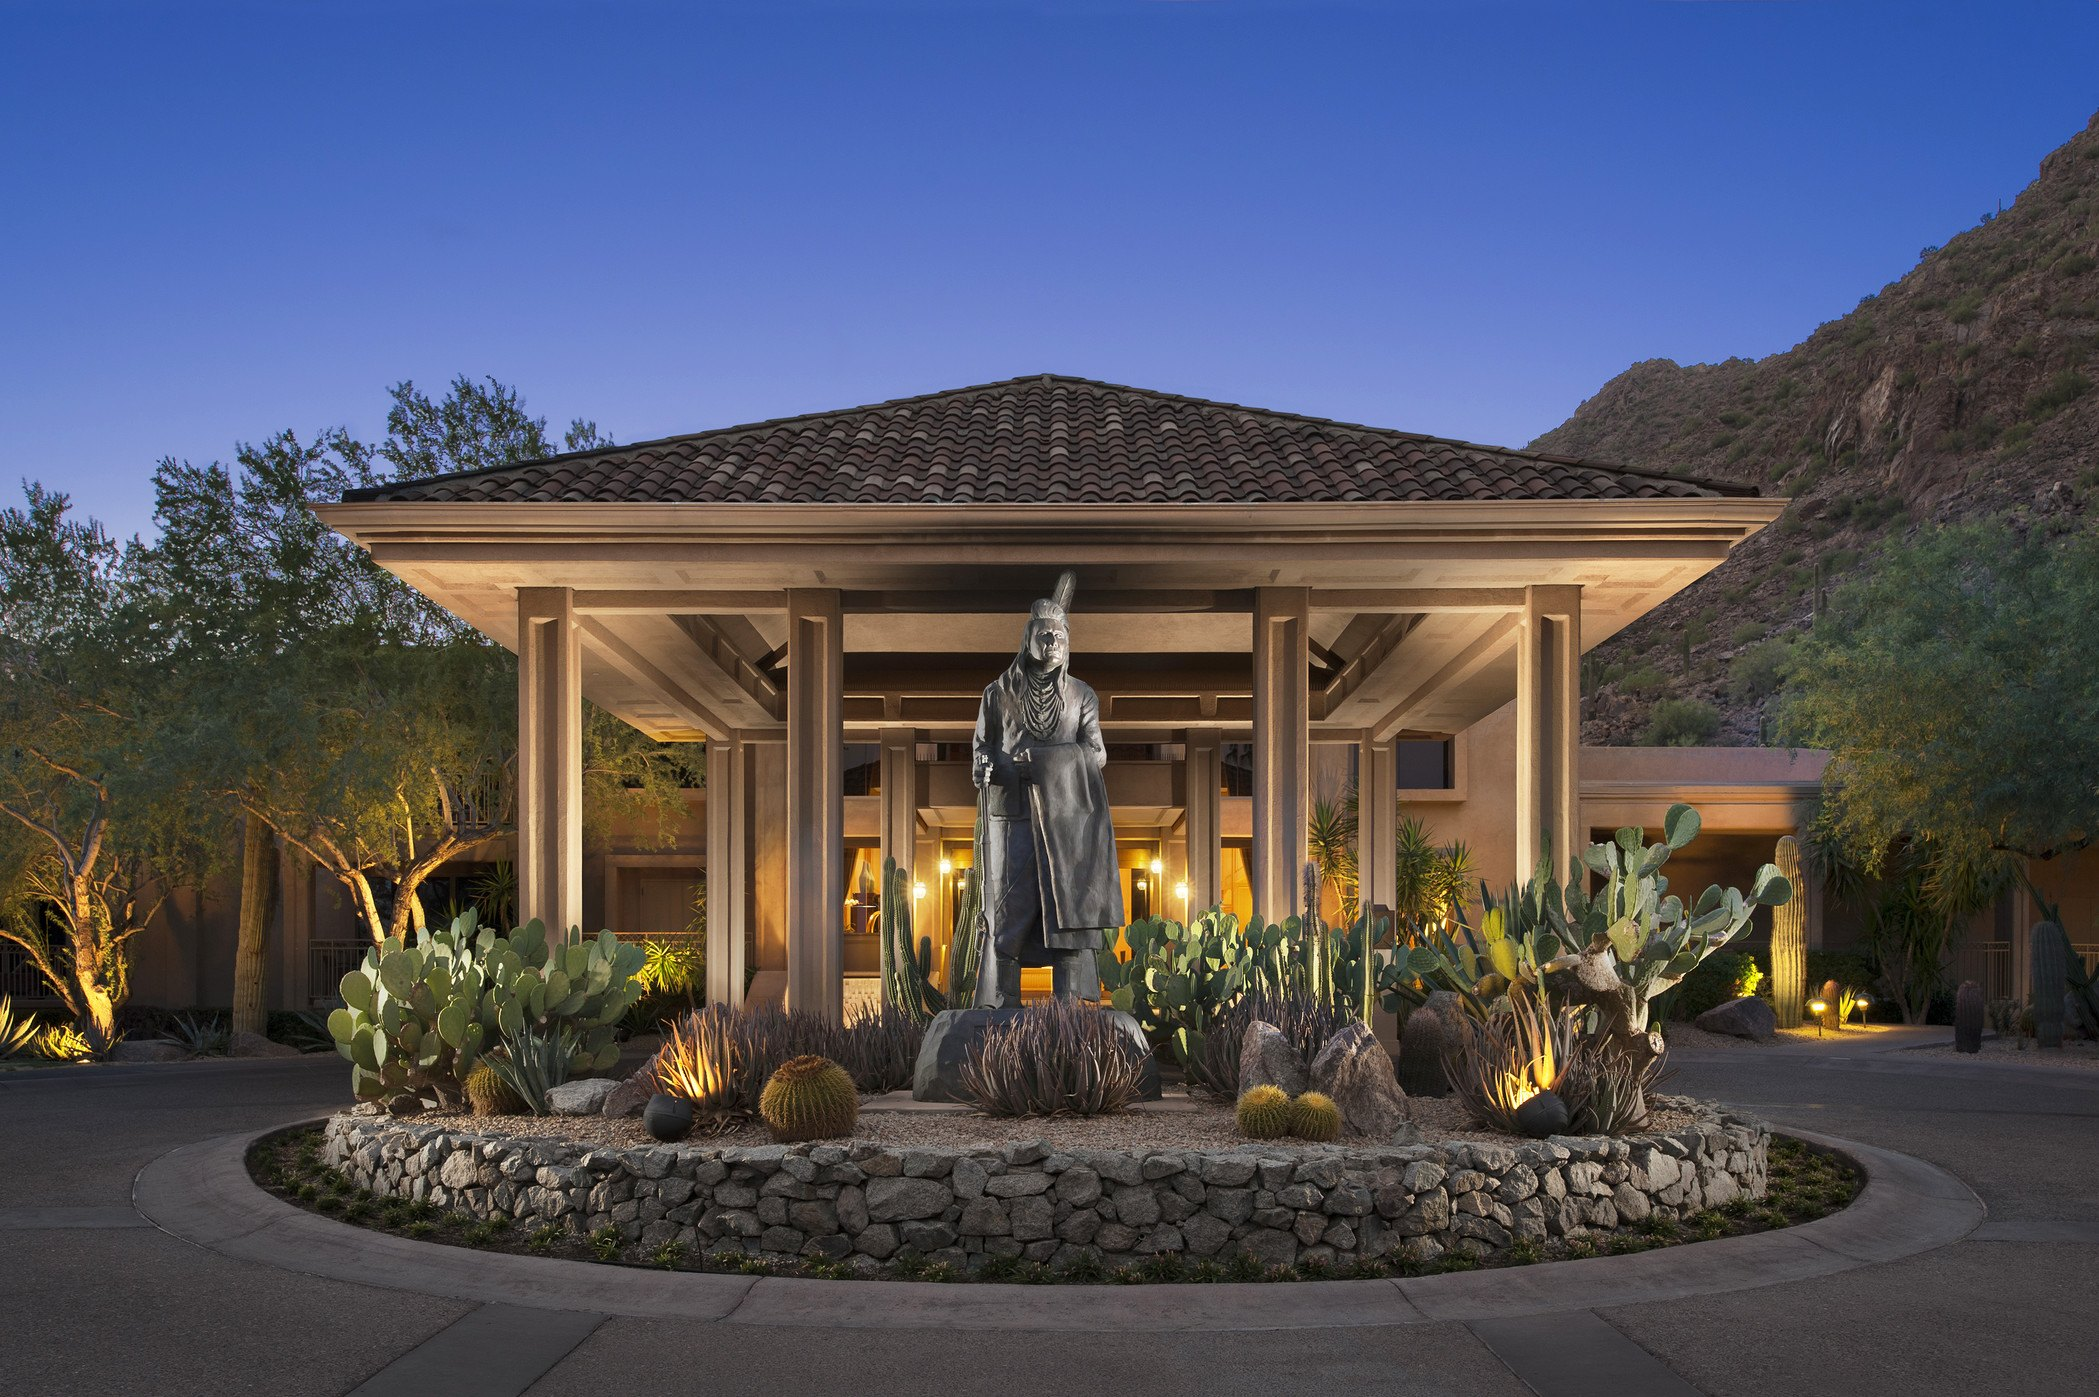 nighttime view of canyon suites luxury hotel porte cochere with grey statue